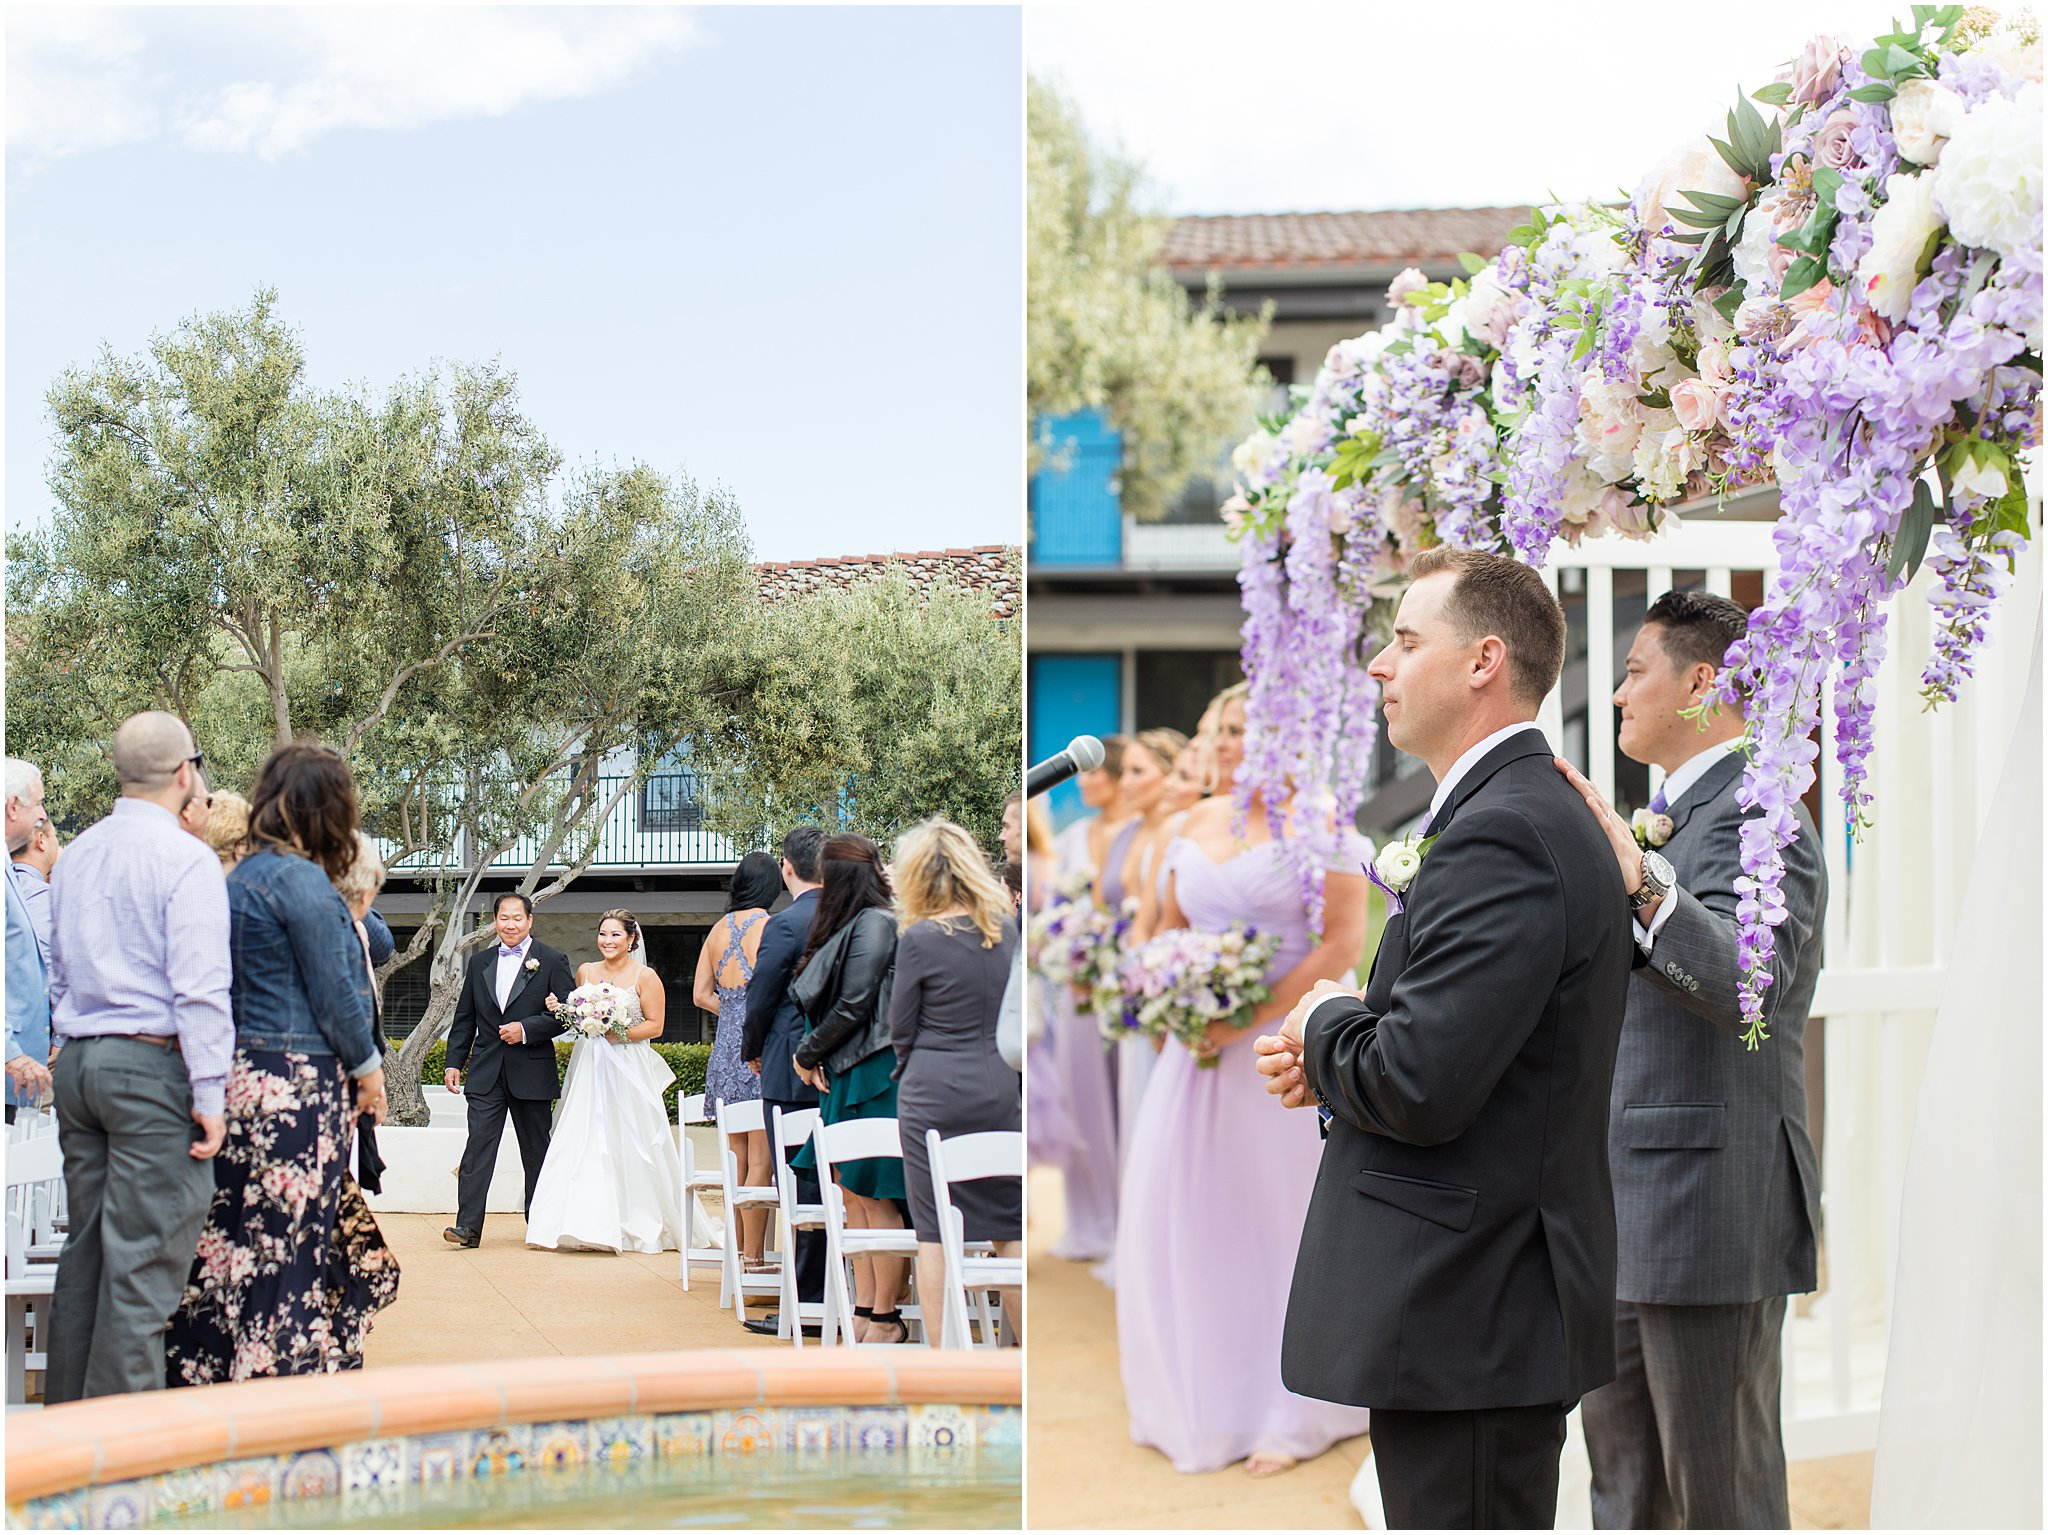 2019 wedding san juan bautista hacienda de leal vineyards bay area wedding photographer_0041.jpg